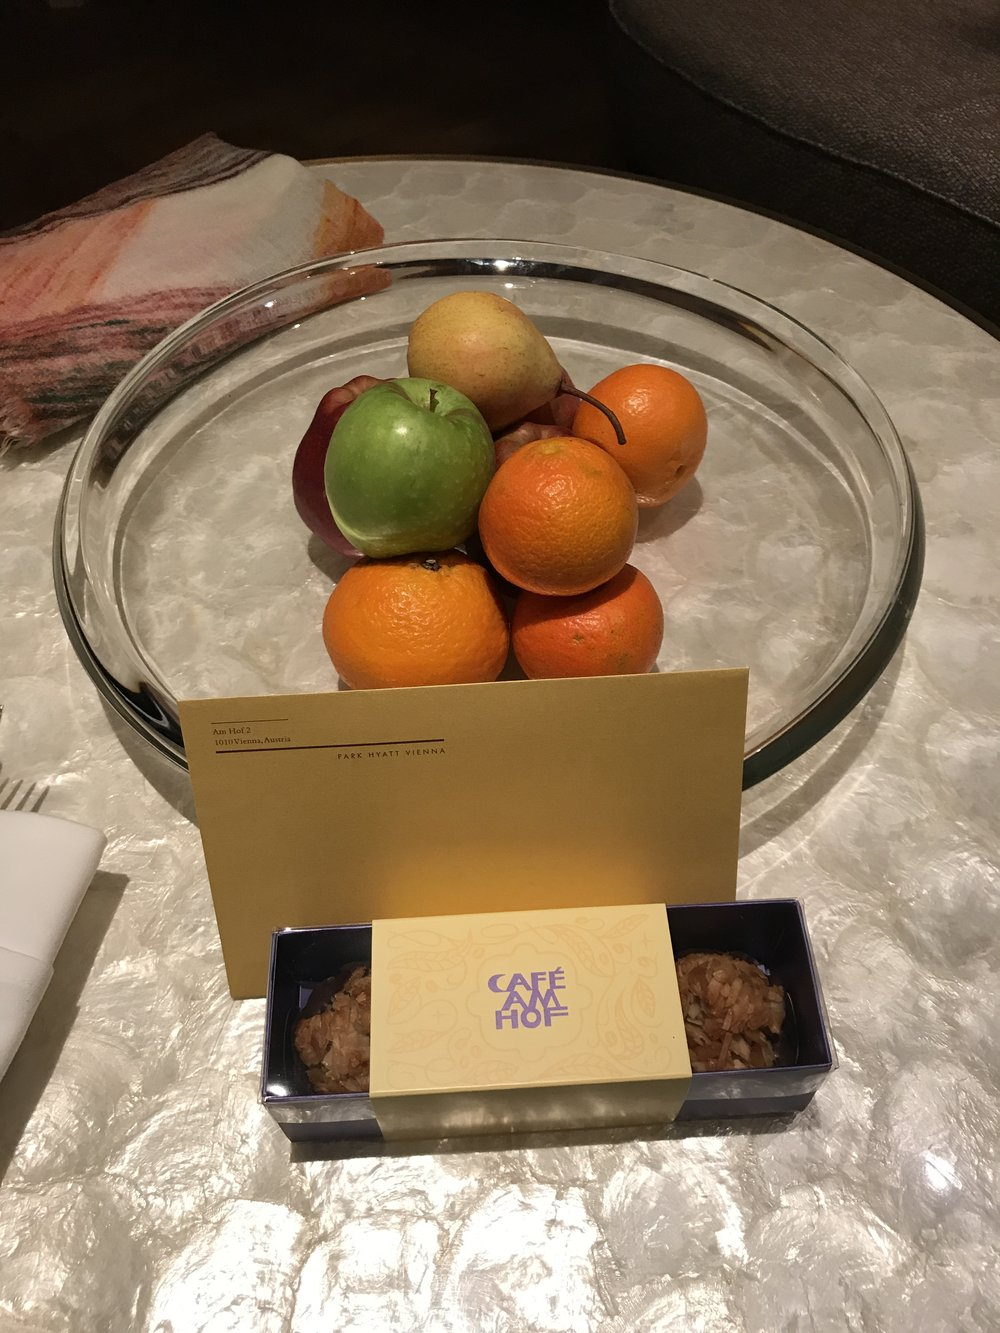 The welcome amenity consisted of fresh fruit and some items from the hotel's bakery.